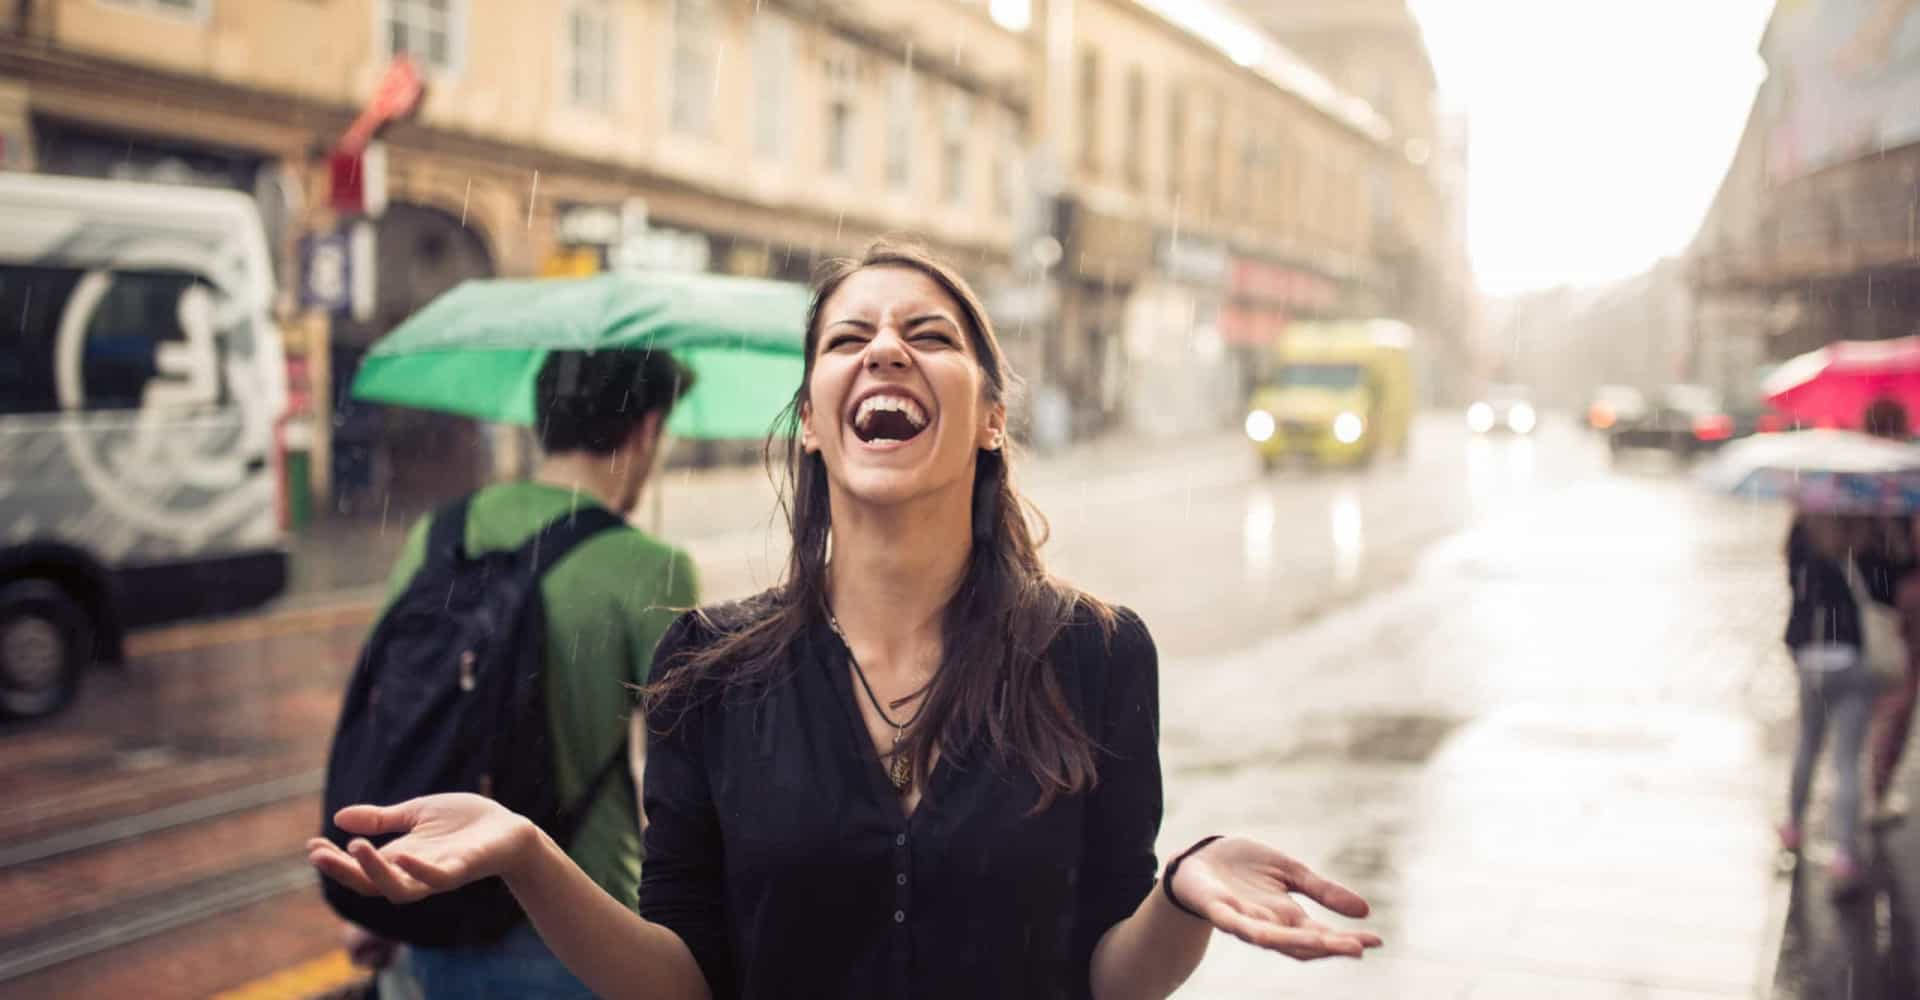 Rain check: 50 fun things to do on a rainy day